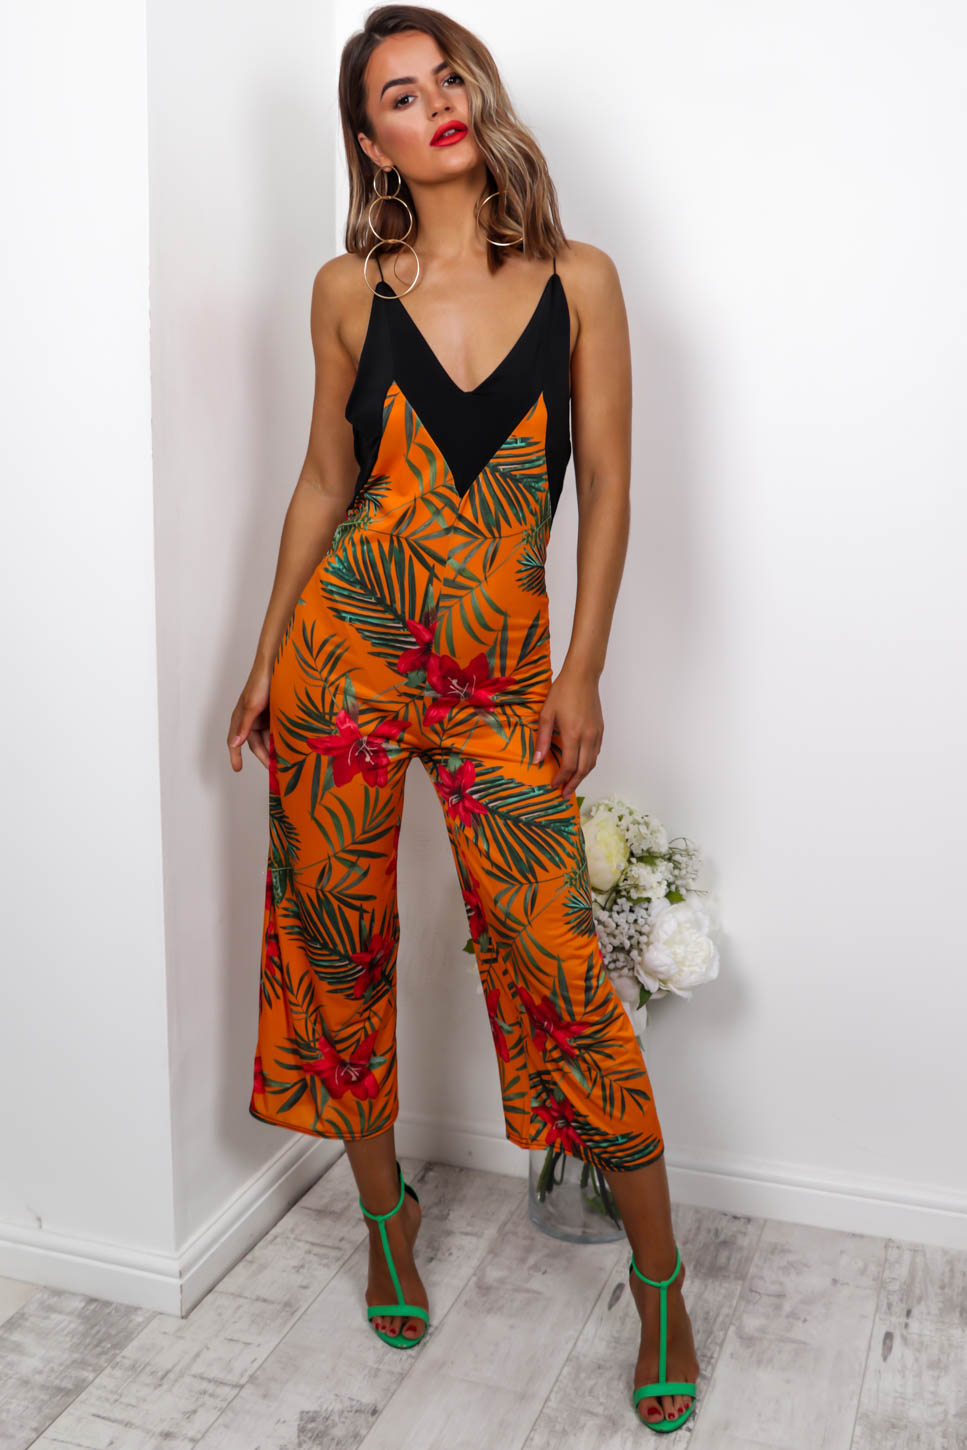 Got Your Back - Jumpsuit In ORANGE/FLORAL